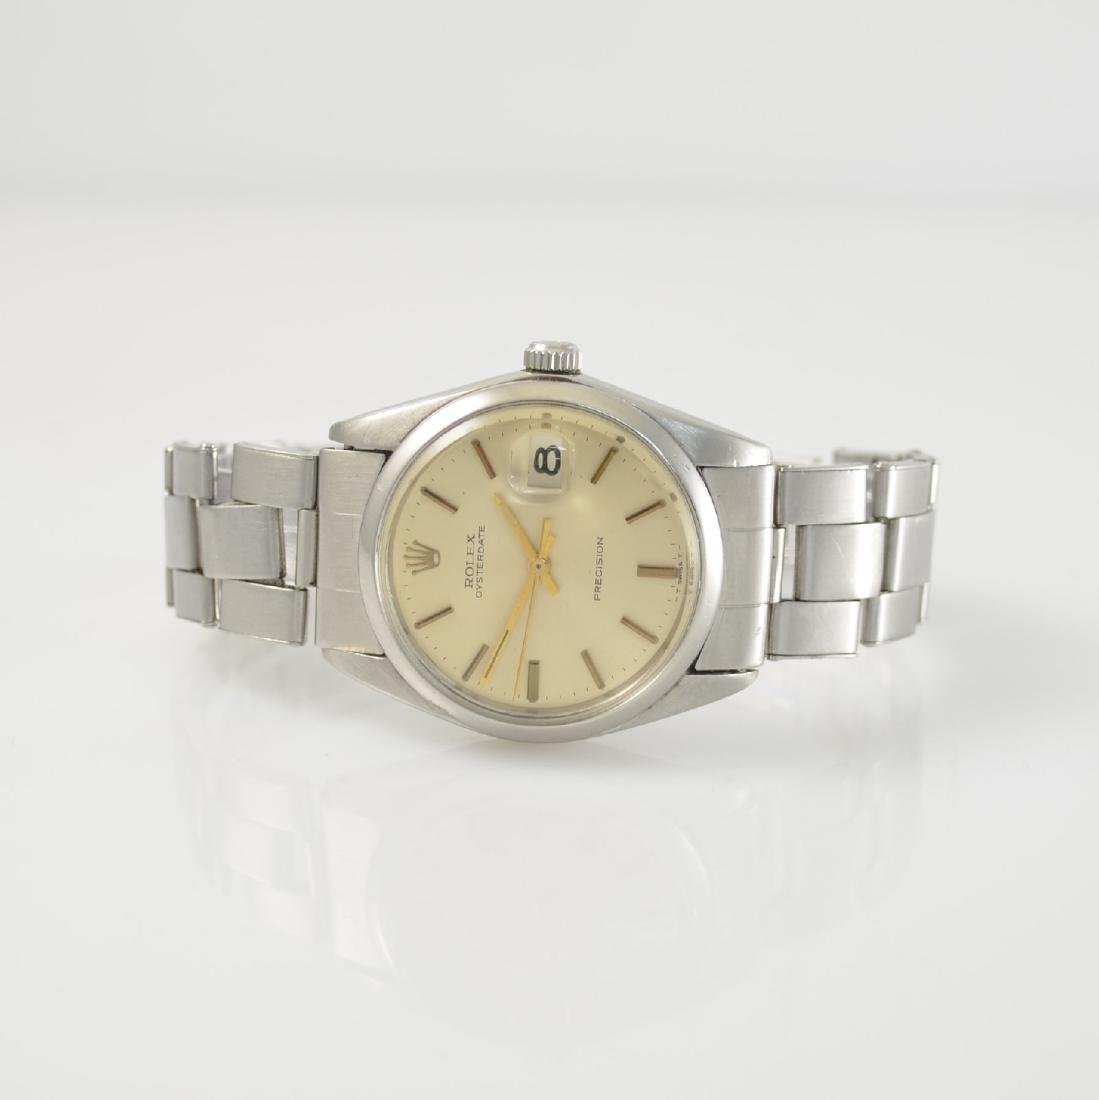 ROLEX Precision reference 6694 gents wristwatch